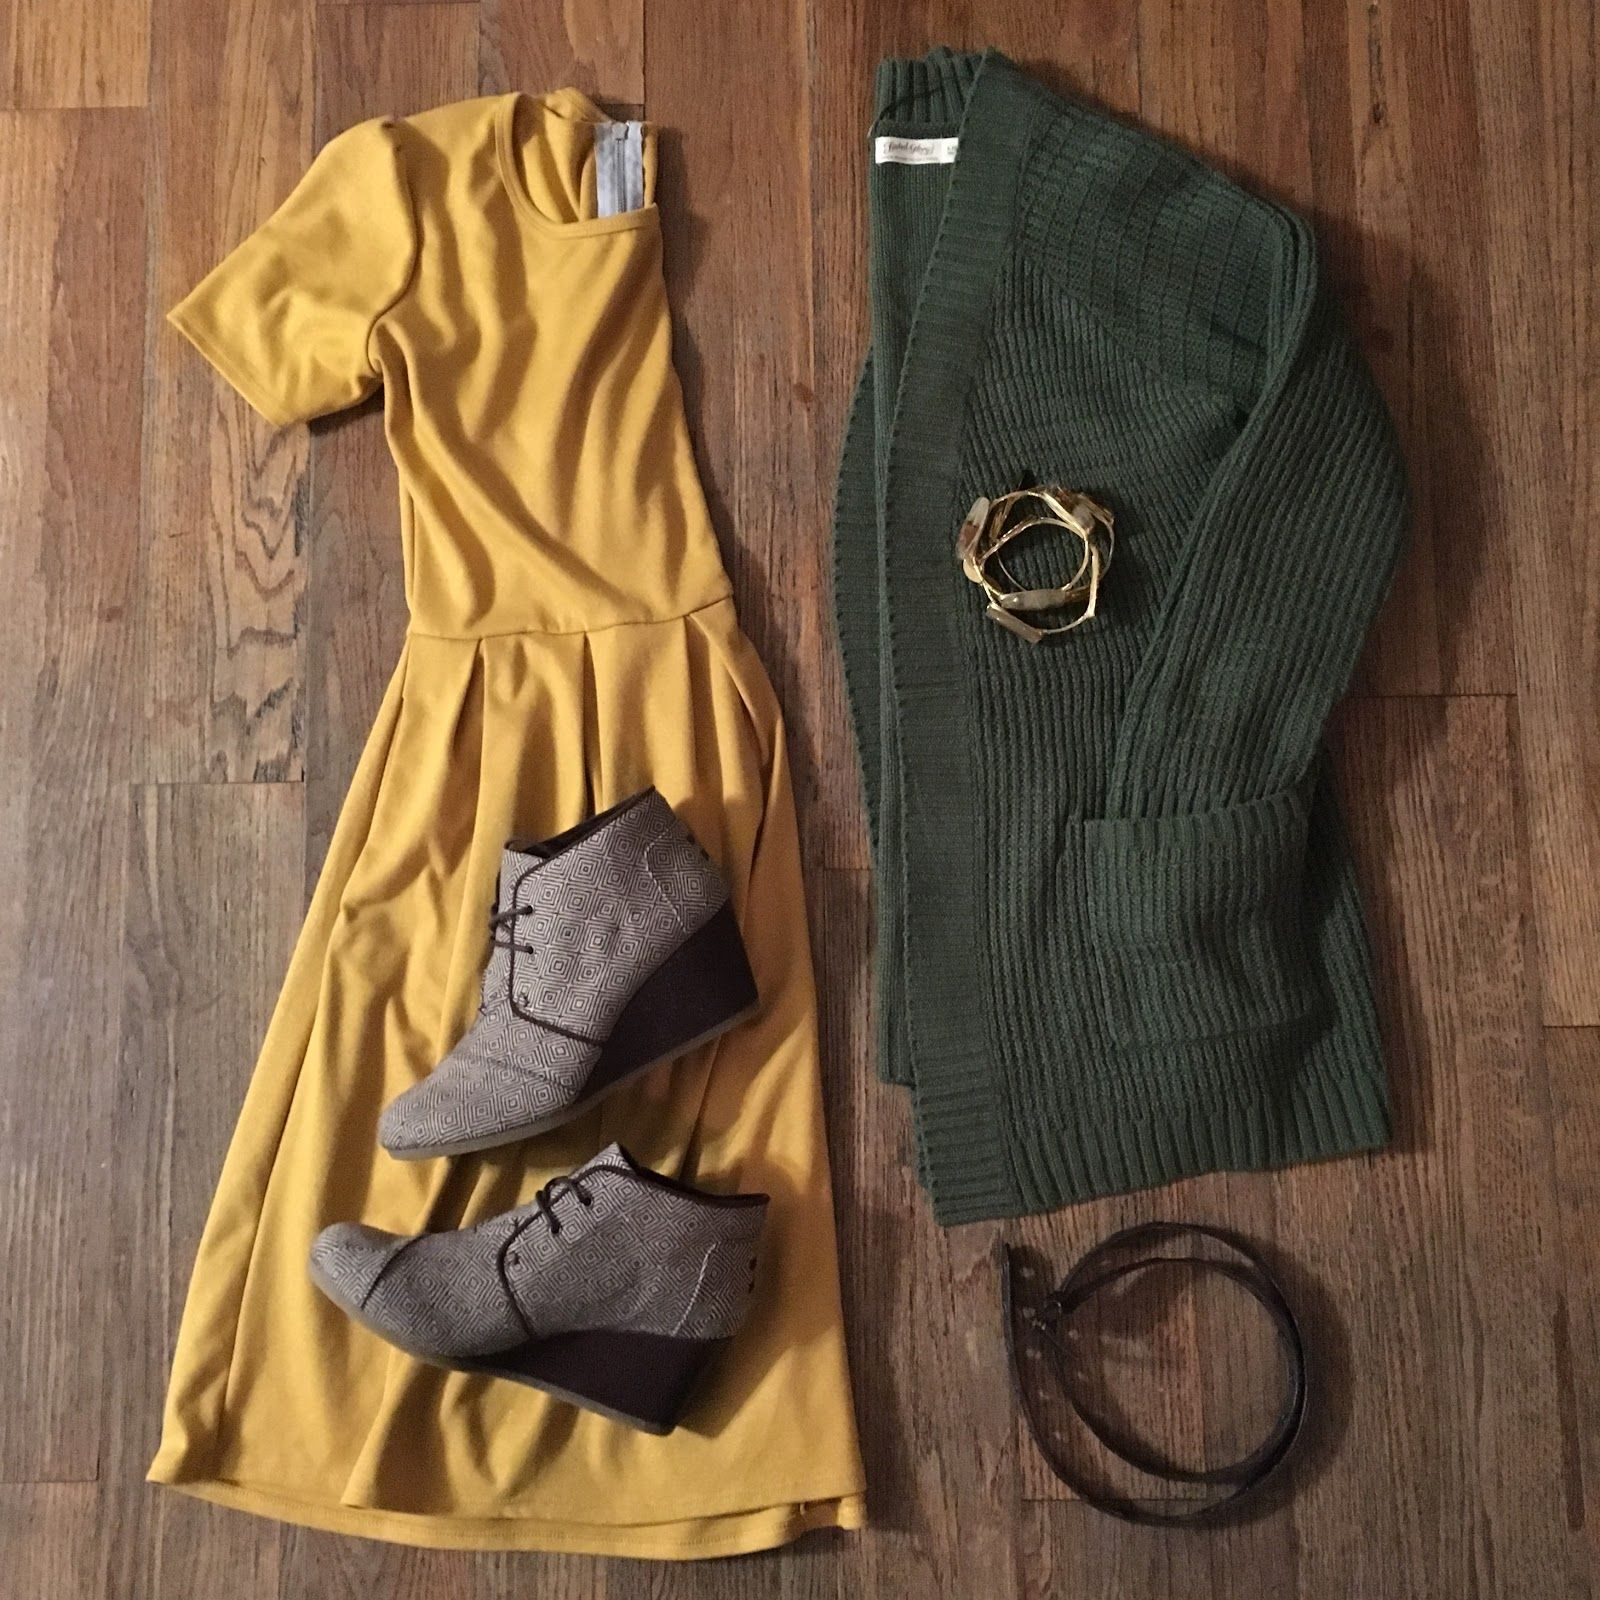 b319832df5 mustard yellow dress outfit